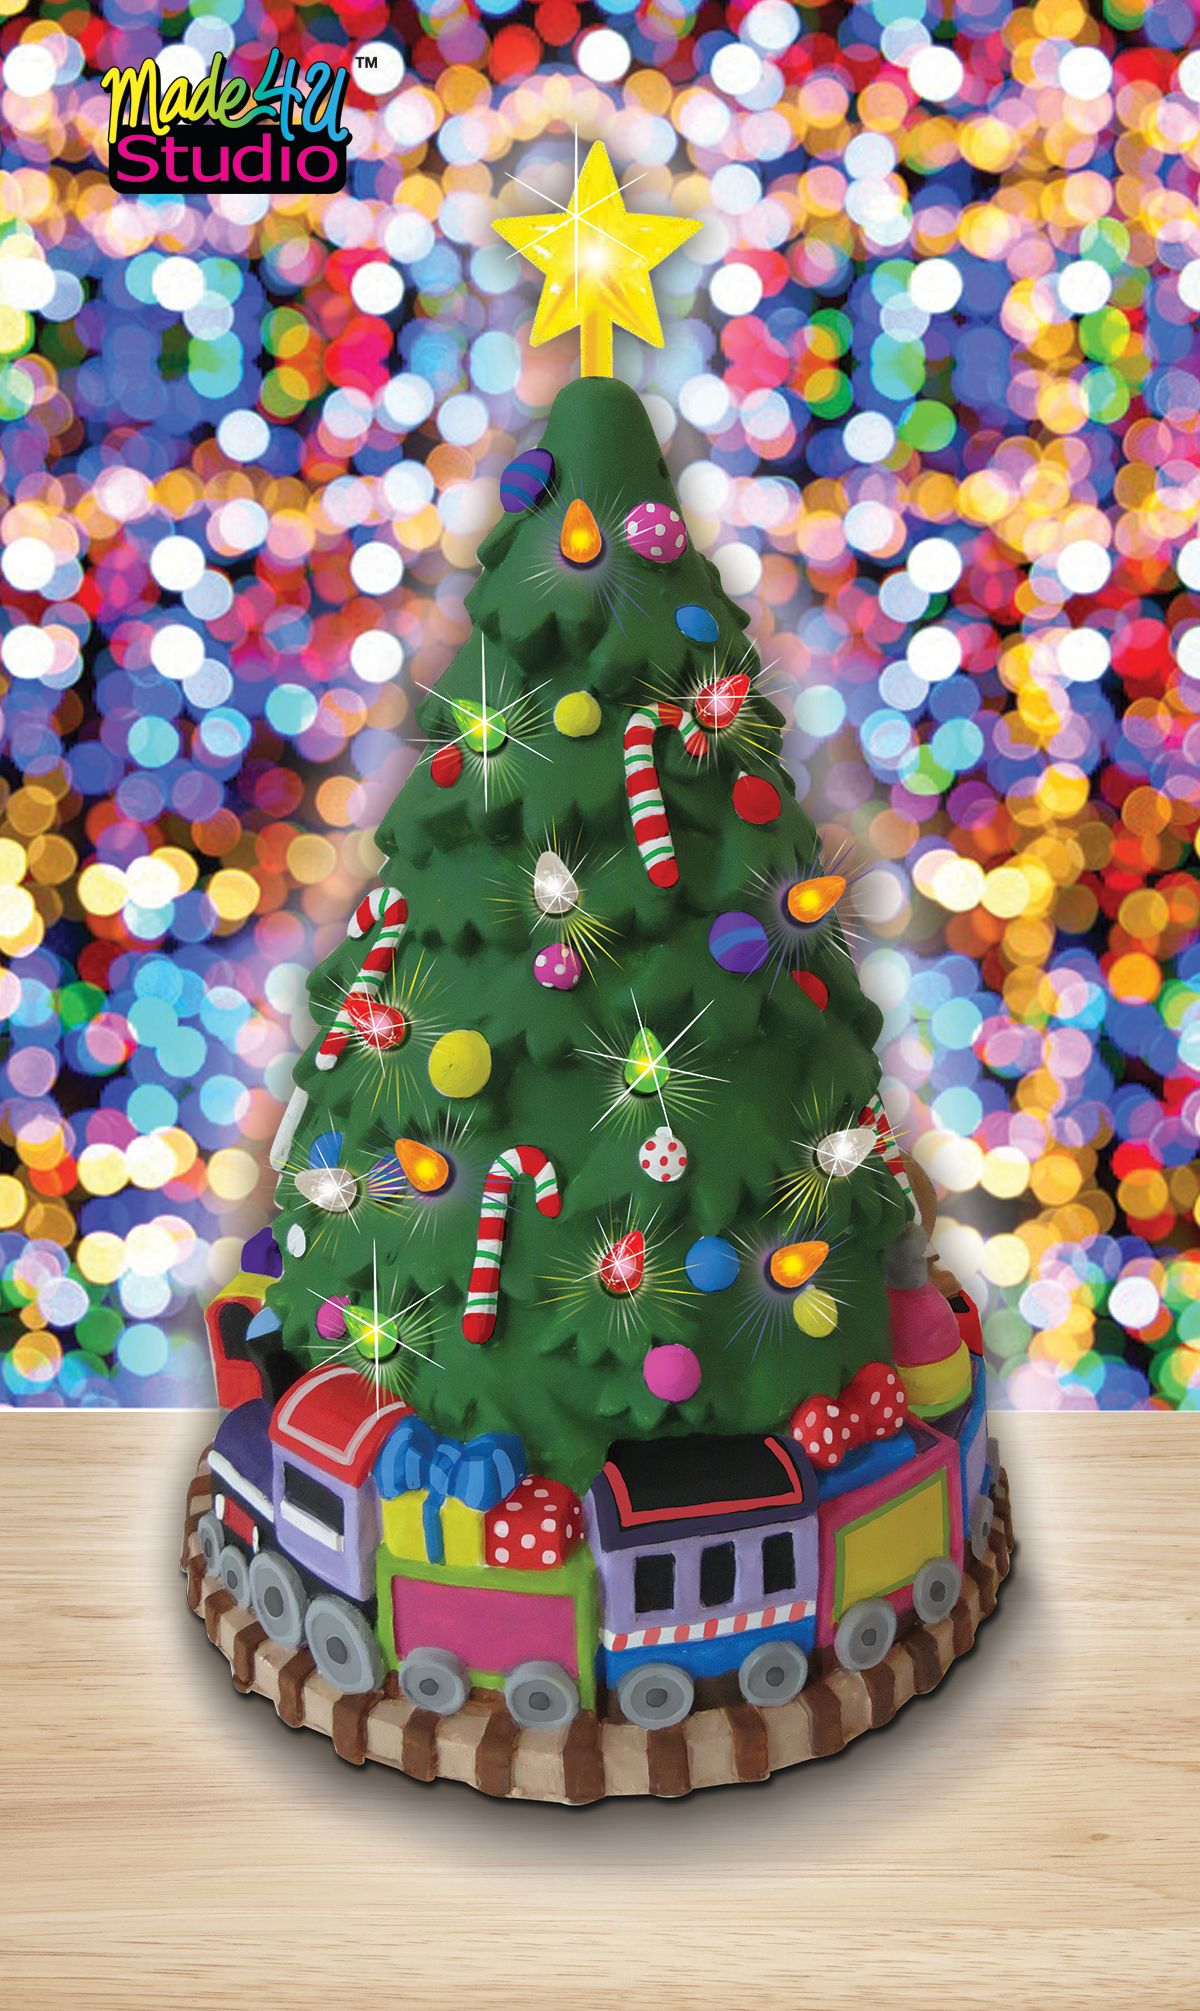 Made4U Studio Paint Your Own Light Up Christmas Tree | Holiday ...